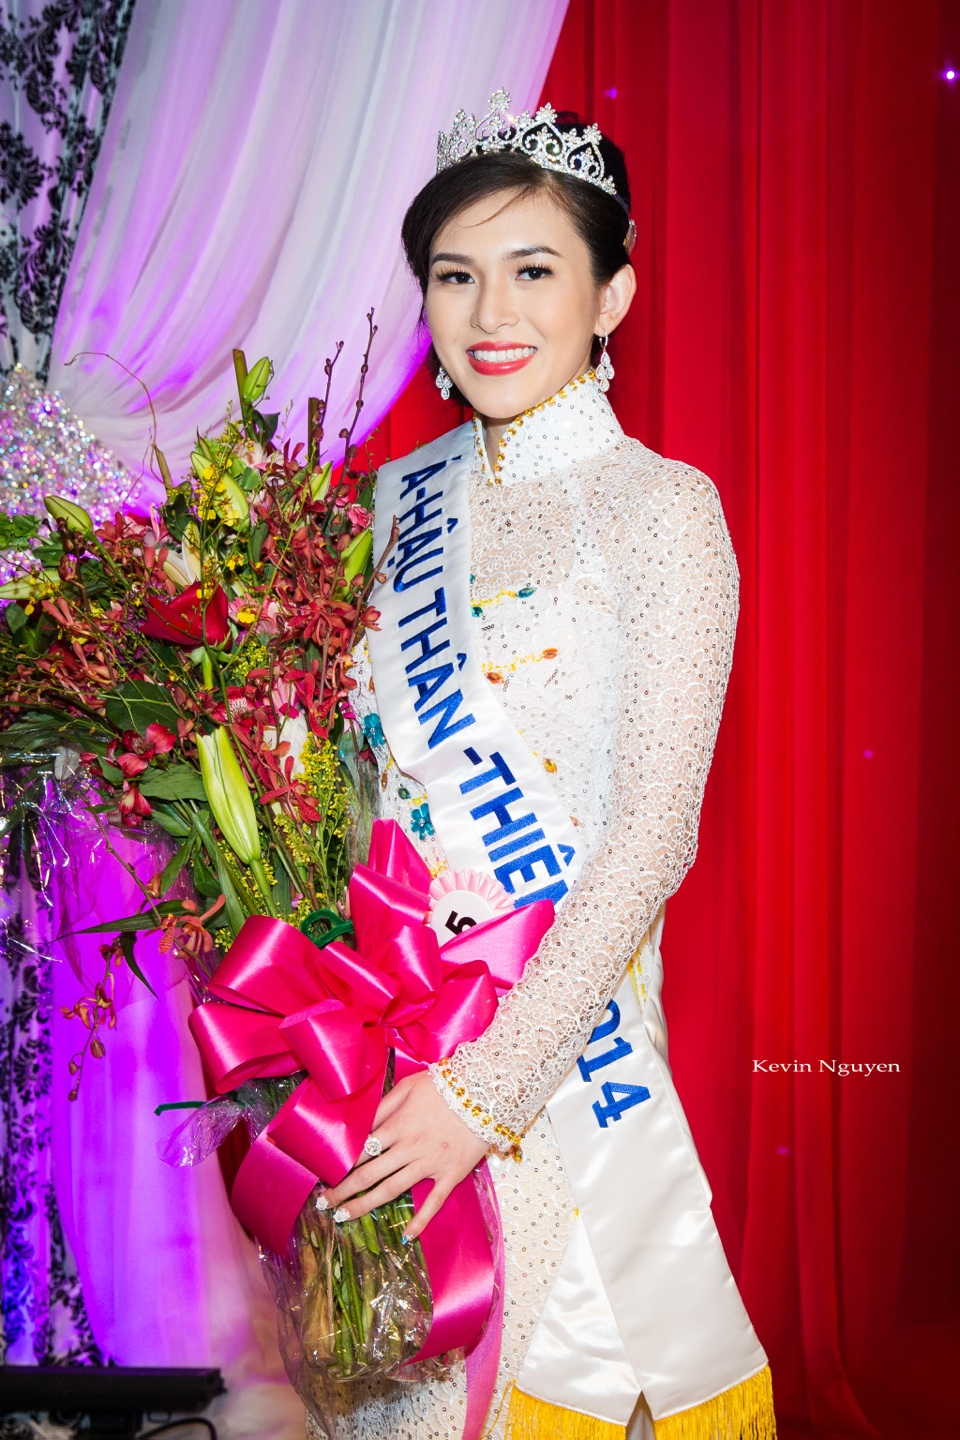 Pageant Day 2014 - Miss Vietnam of Northern California - San Jose, CA - Image 853